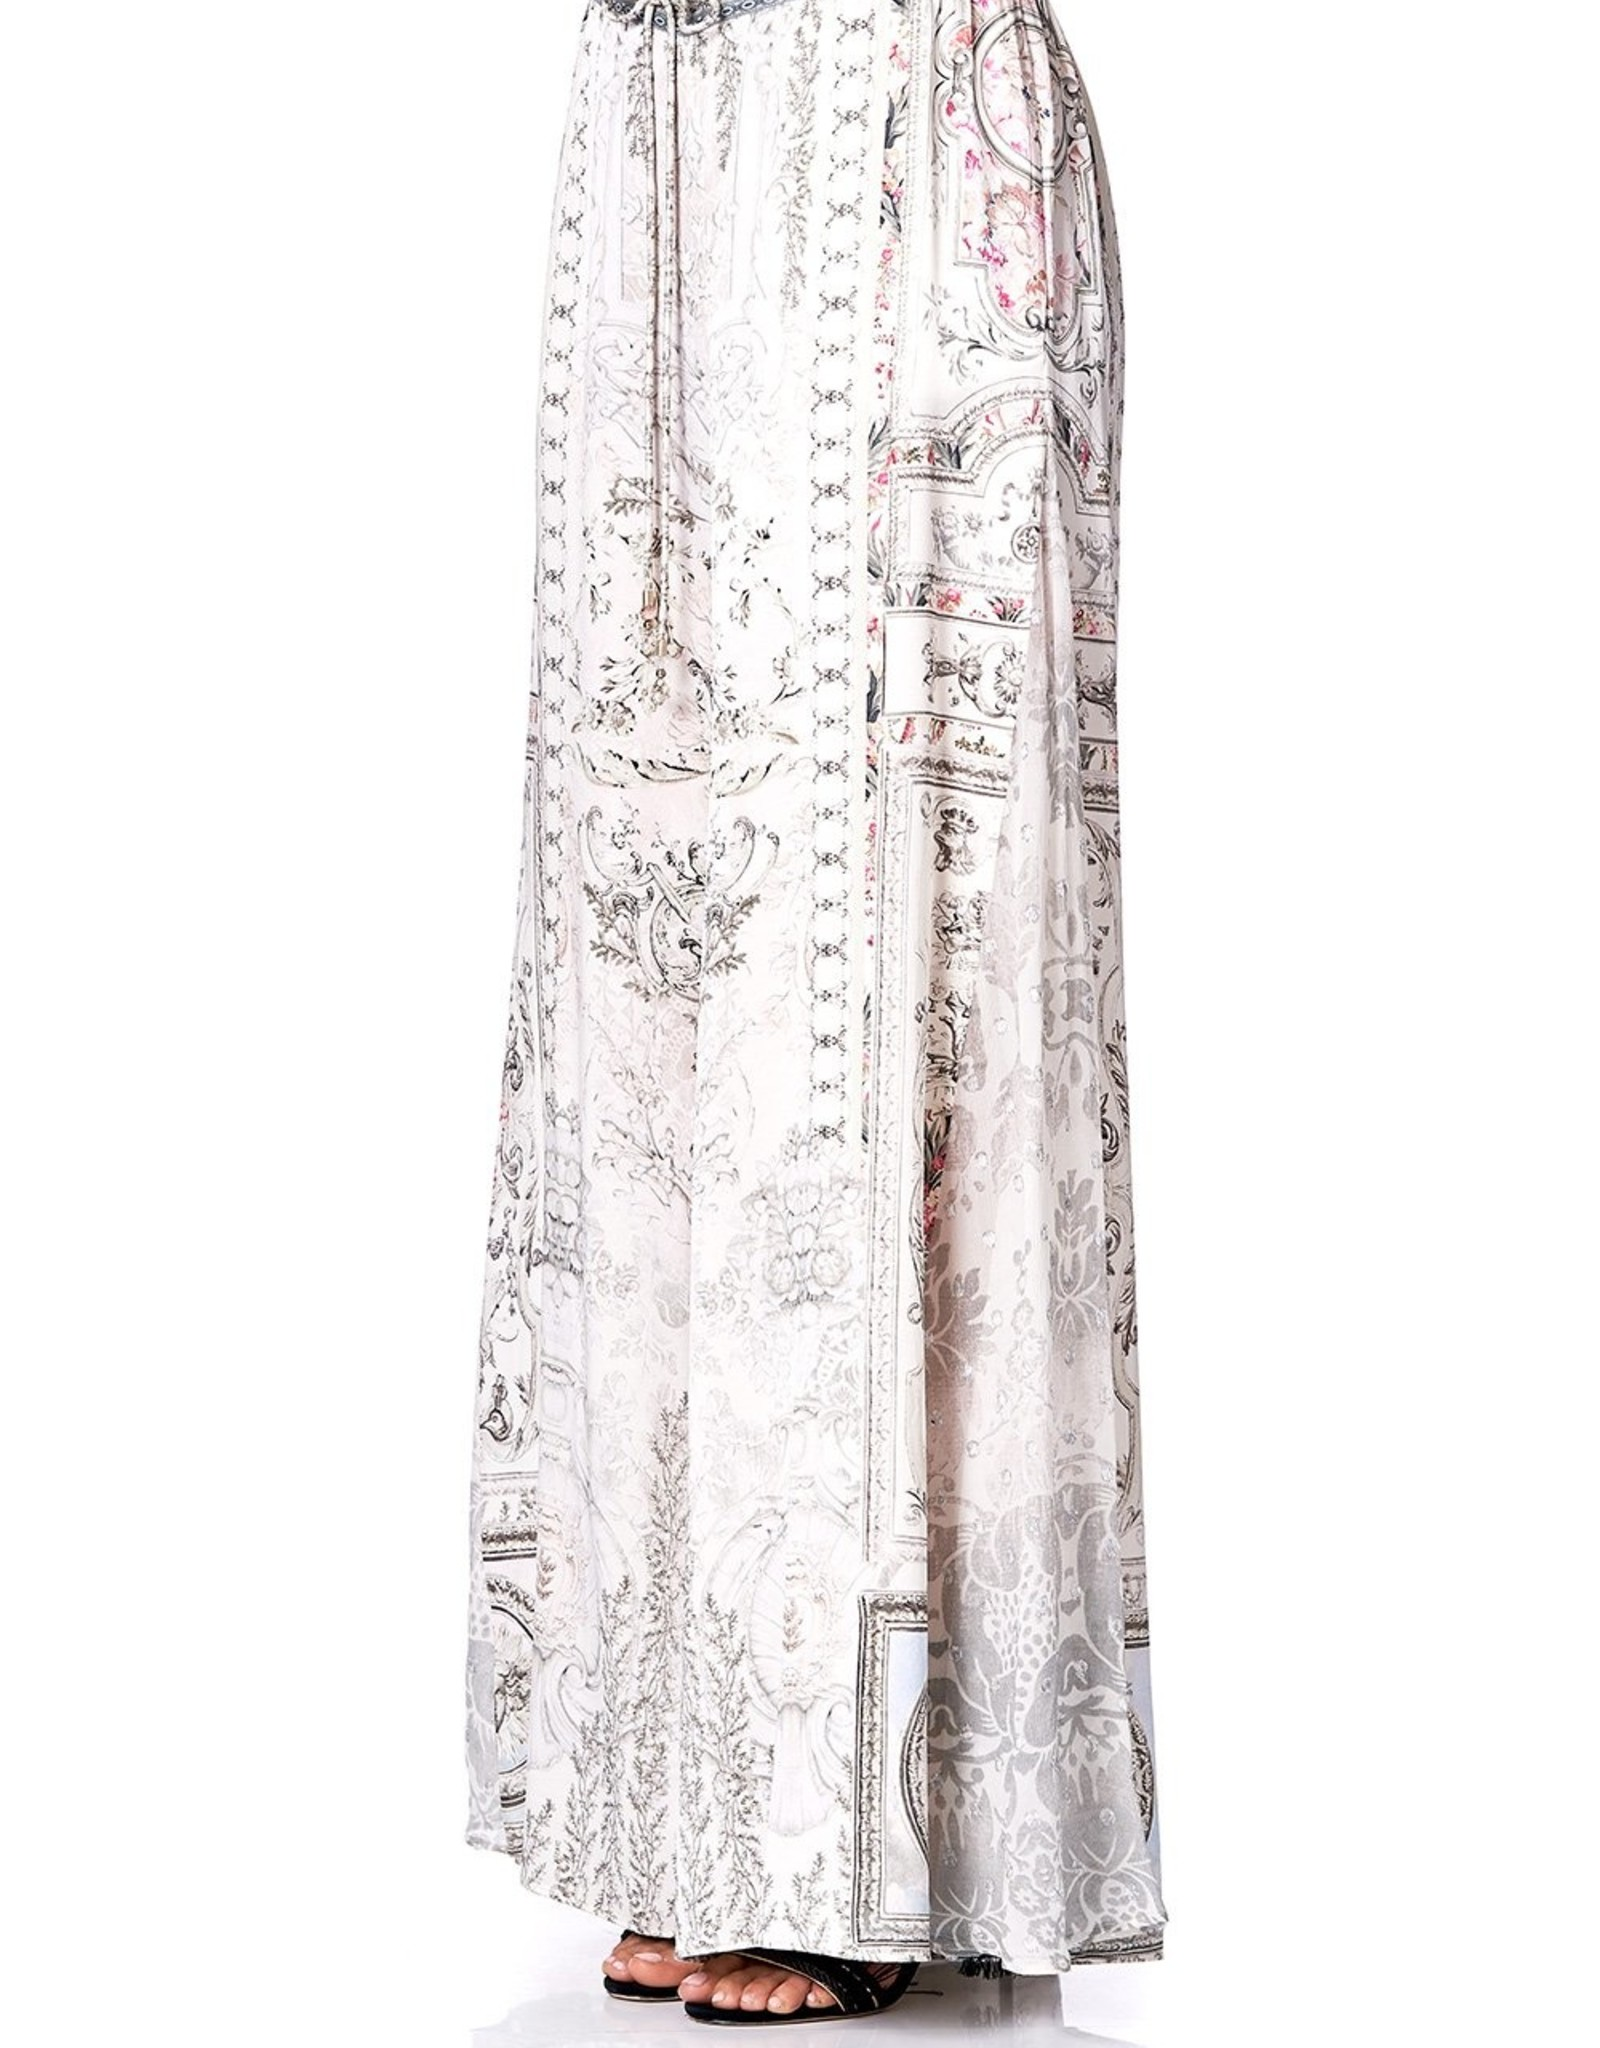 SALE - CAMILLA CRYSTAL CASTLE SOFT PANTS WITH GODETS